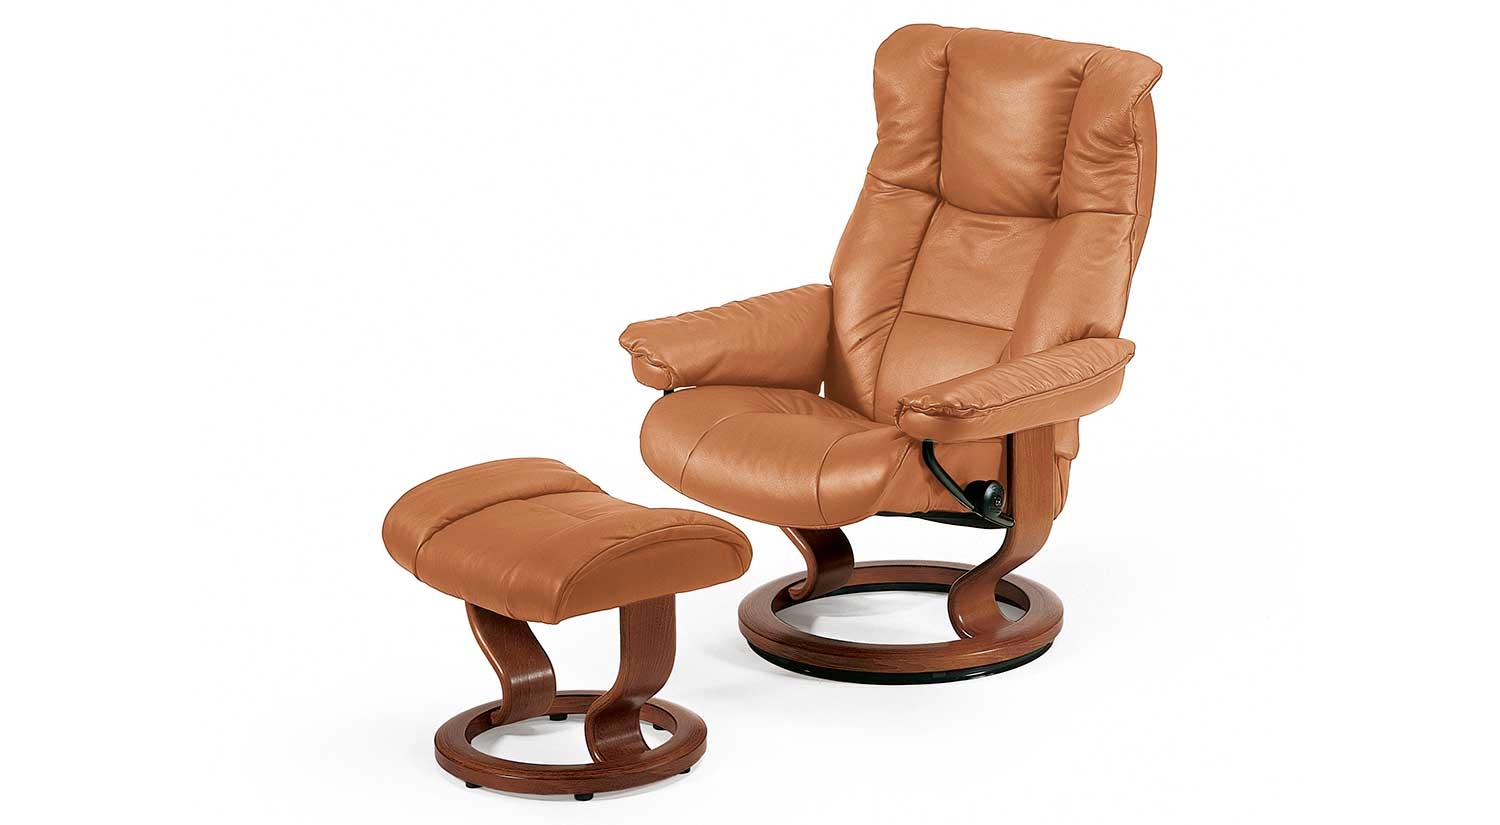 Circle Furniture Mayfair Recliner Stressless Ma Circle Furniture